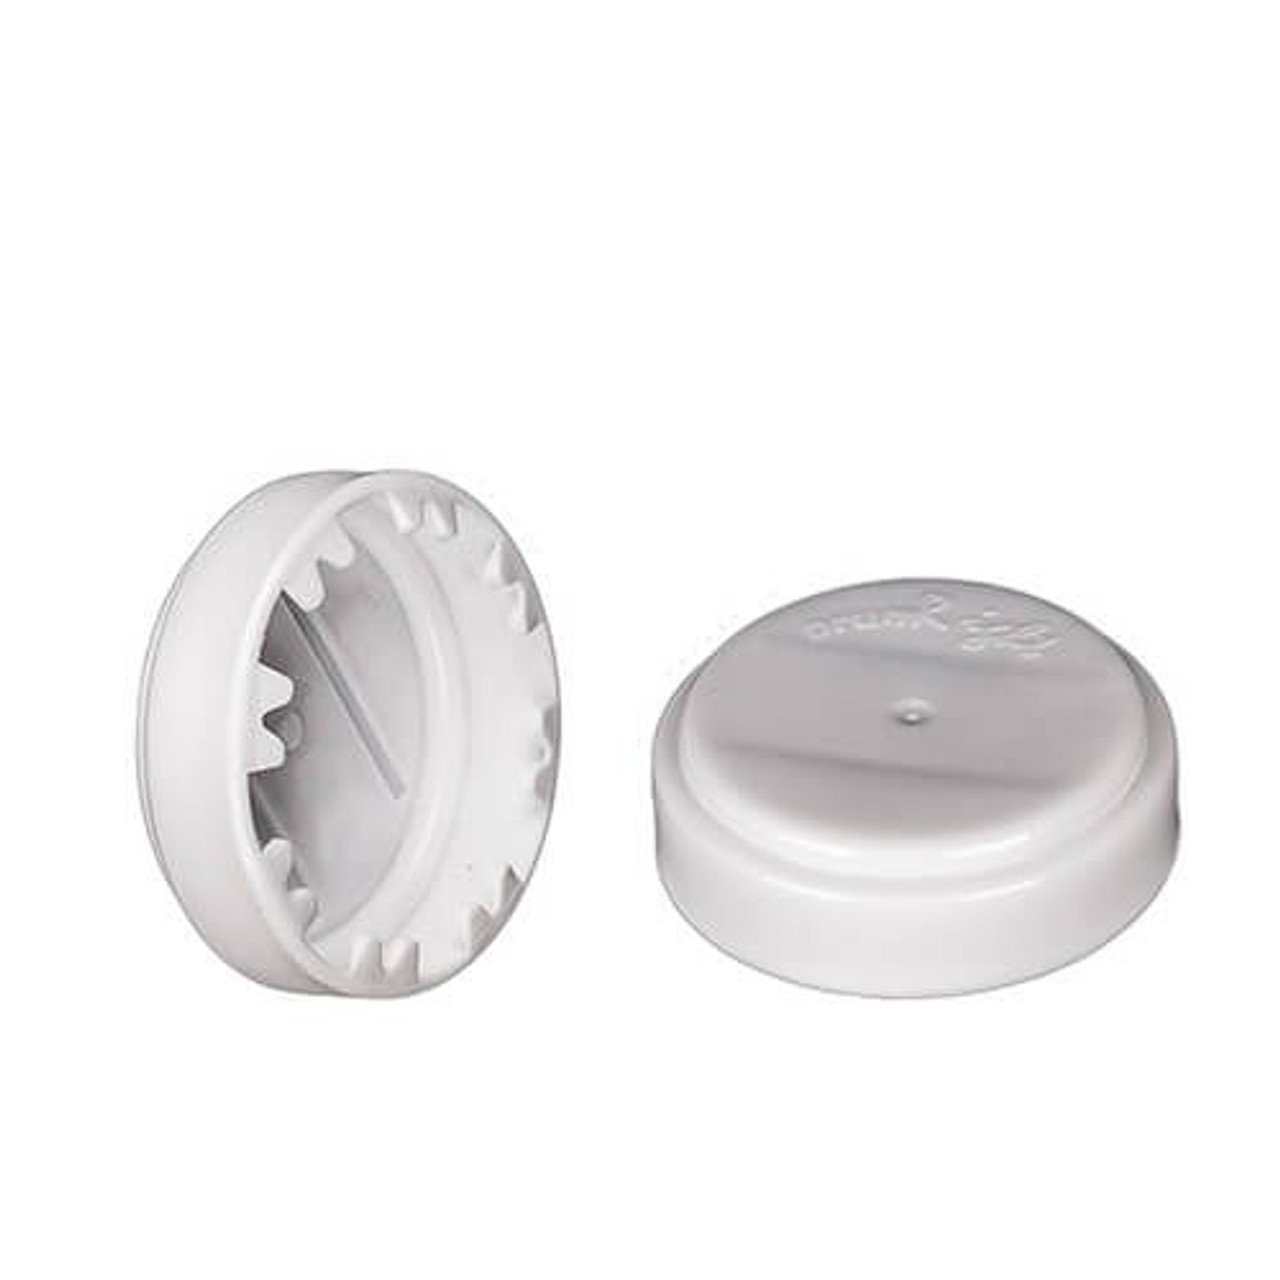 3/4 INCH ROUND HEAD PLASTIC CAPSEAL SNAP ON